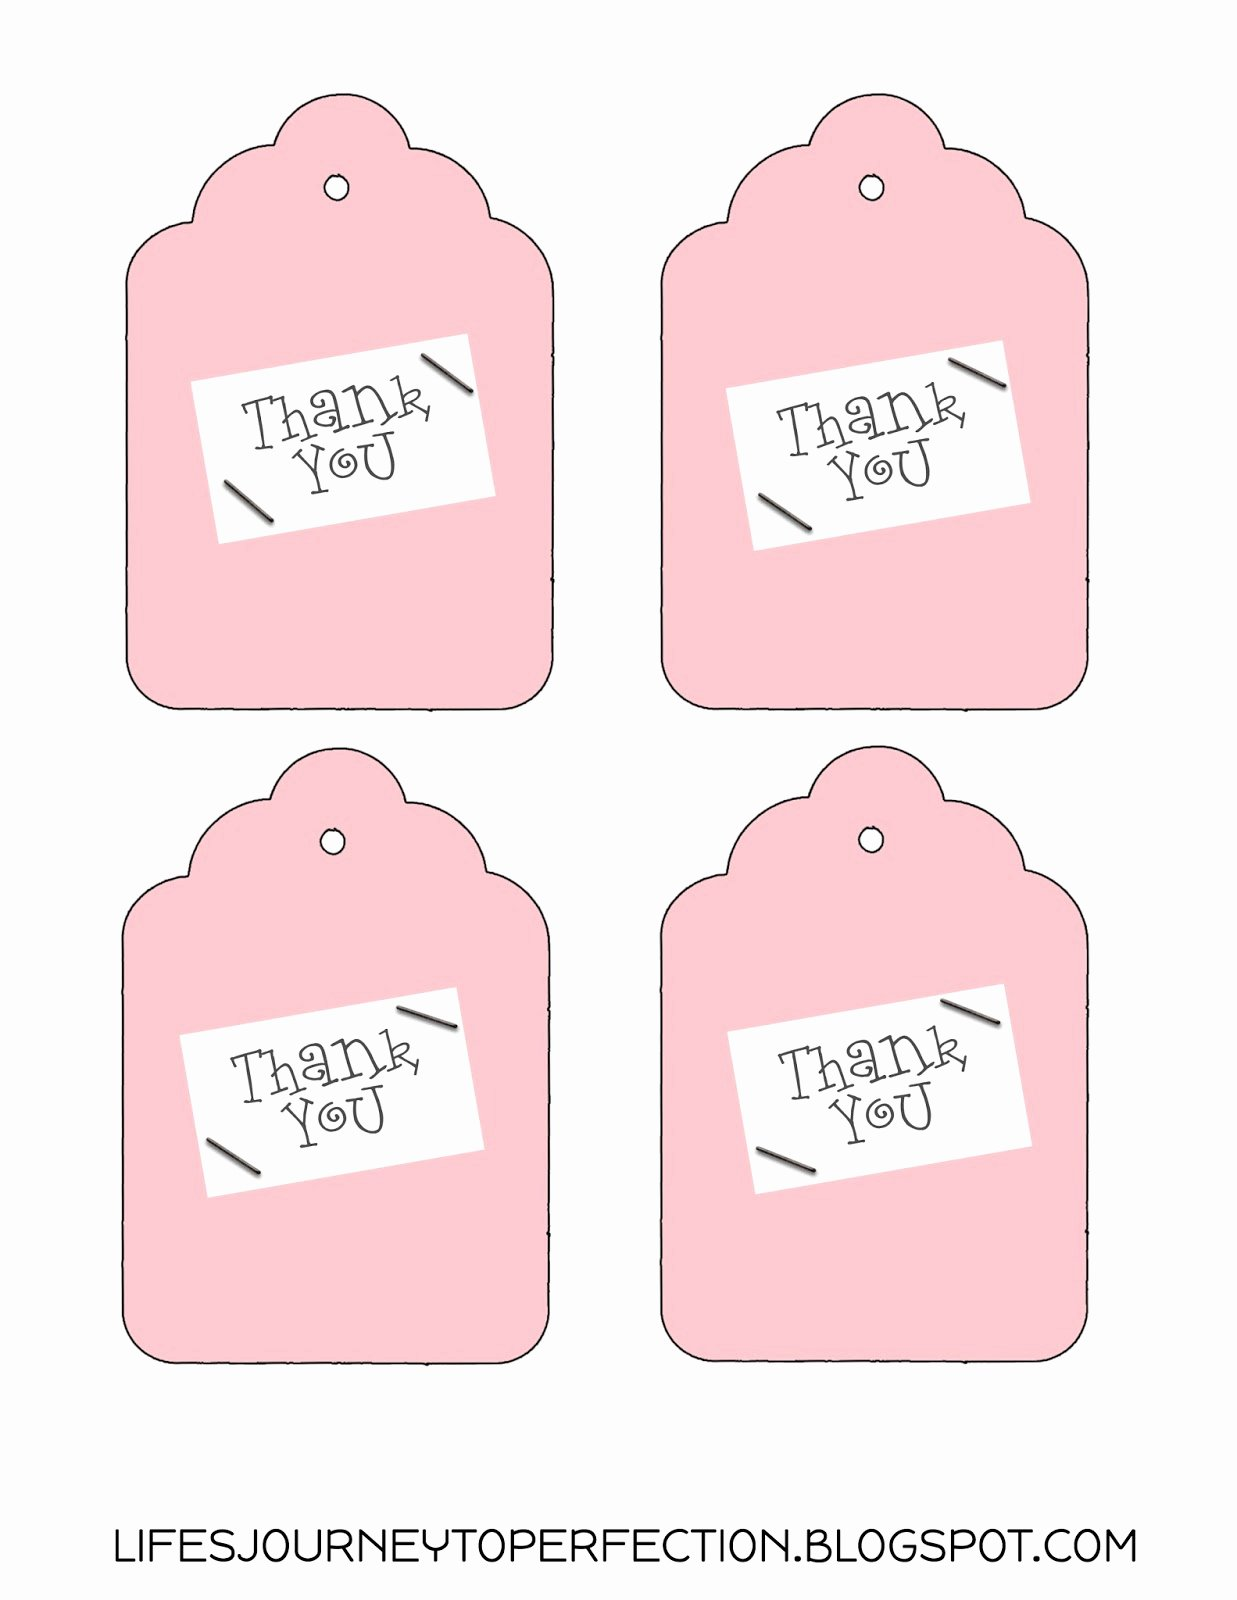 Printable Thank You Tags Awesome Life S Journey to Perfection Thank You Gift Idea and Free